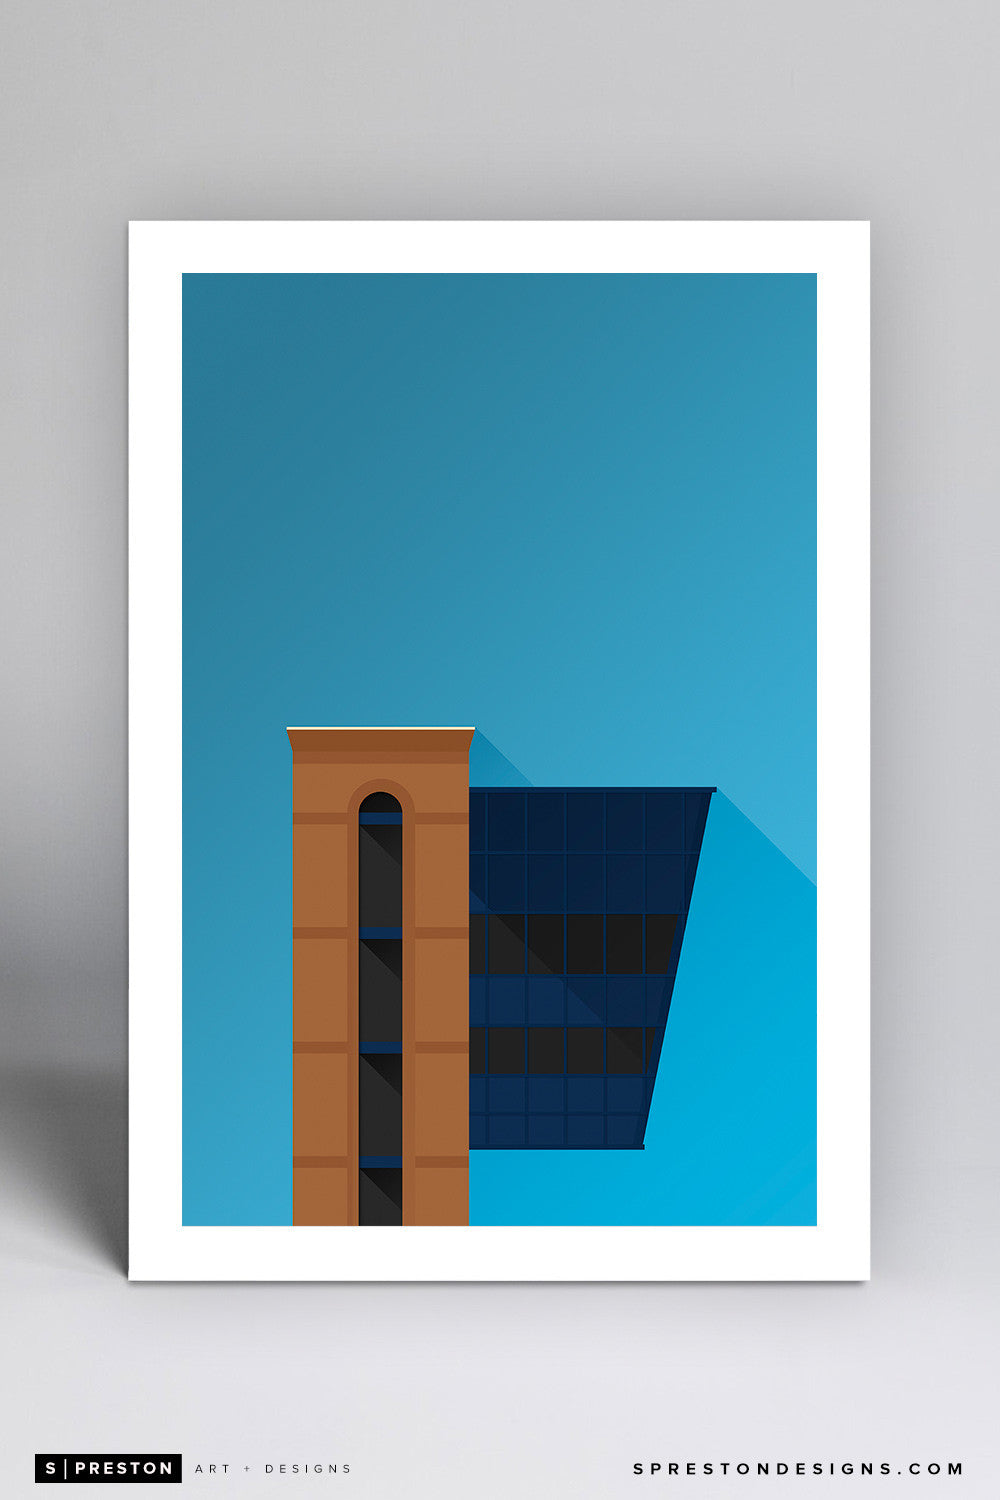 Minimalist Michigan Stadium (Pressbox) Art Print - University of Michigan - S. Preston Art + Designs